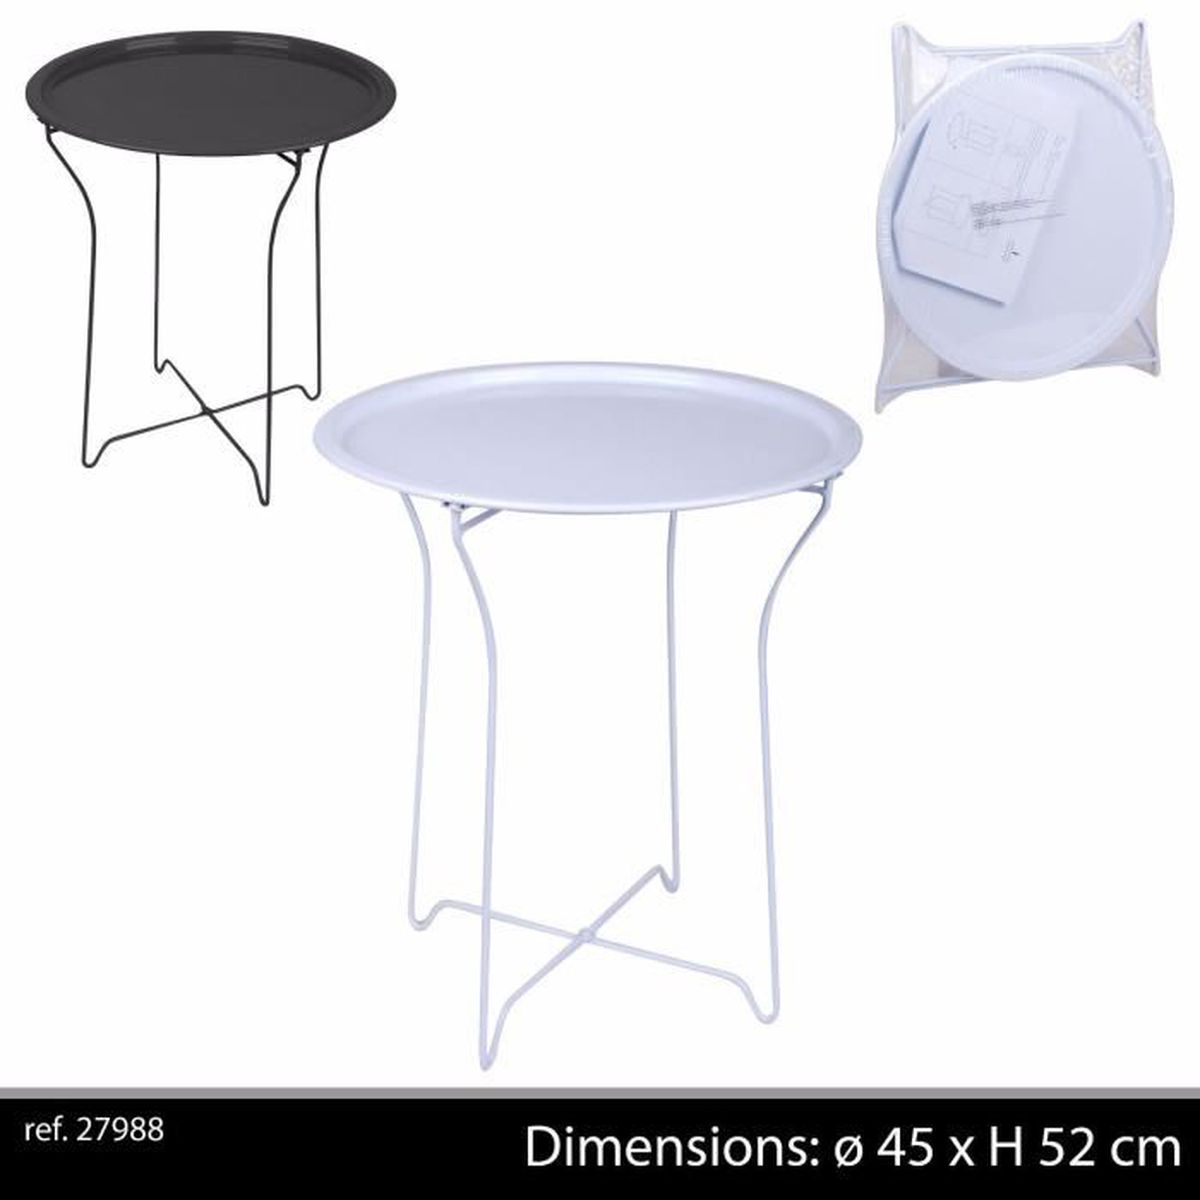 Best table basse de jardin blanche pictures awesome - Table basse classique ...